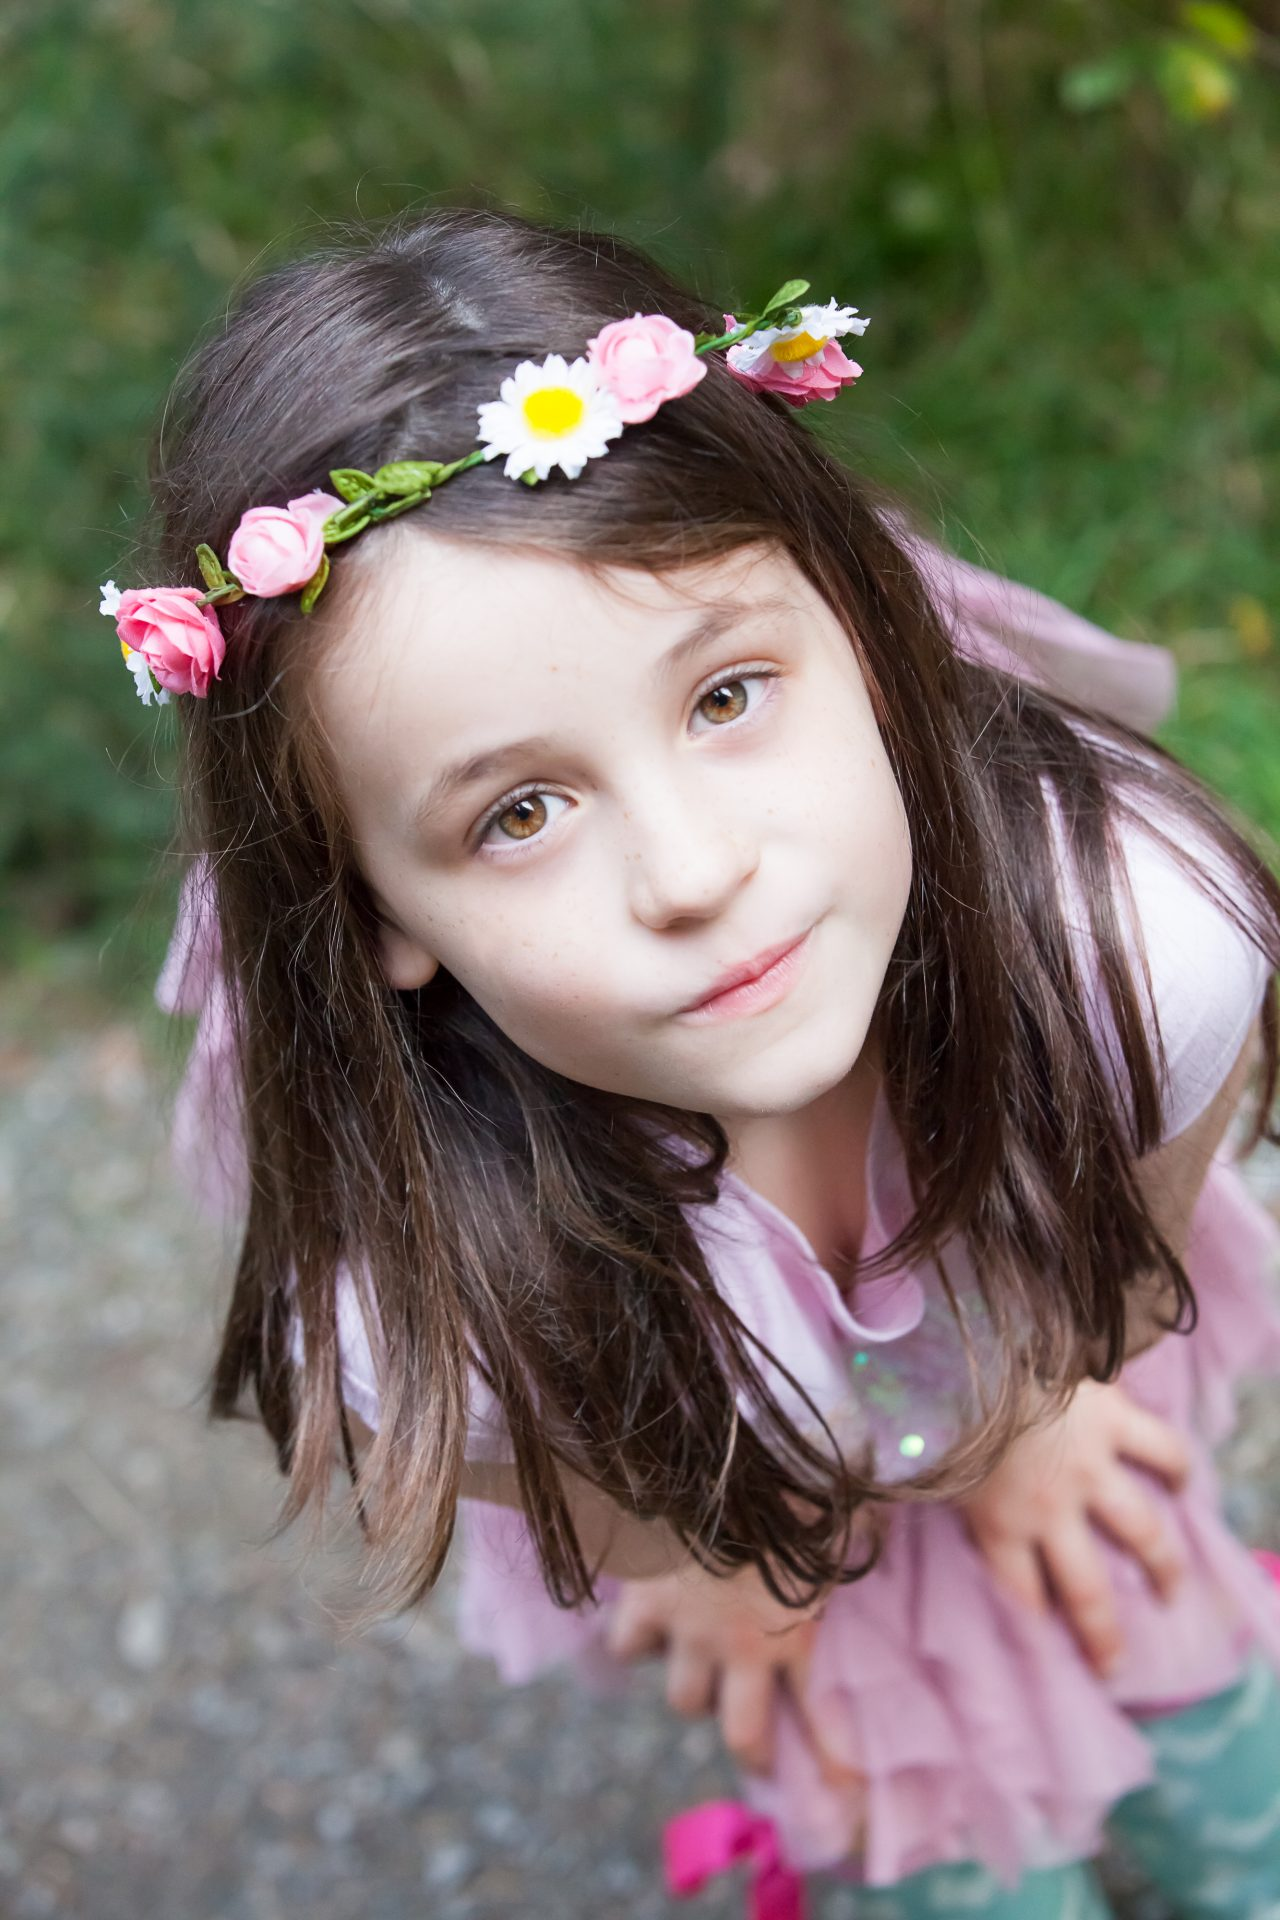 young girl with flowers in hair staring up